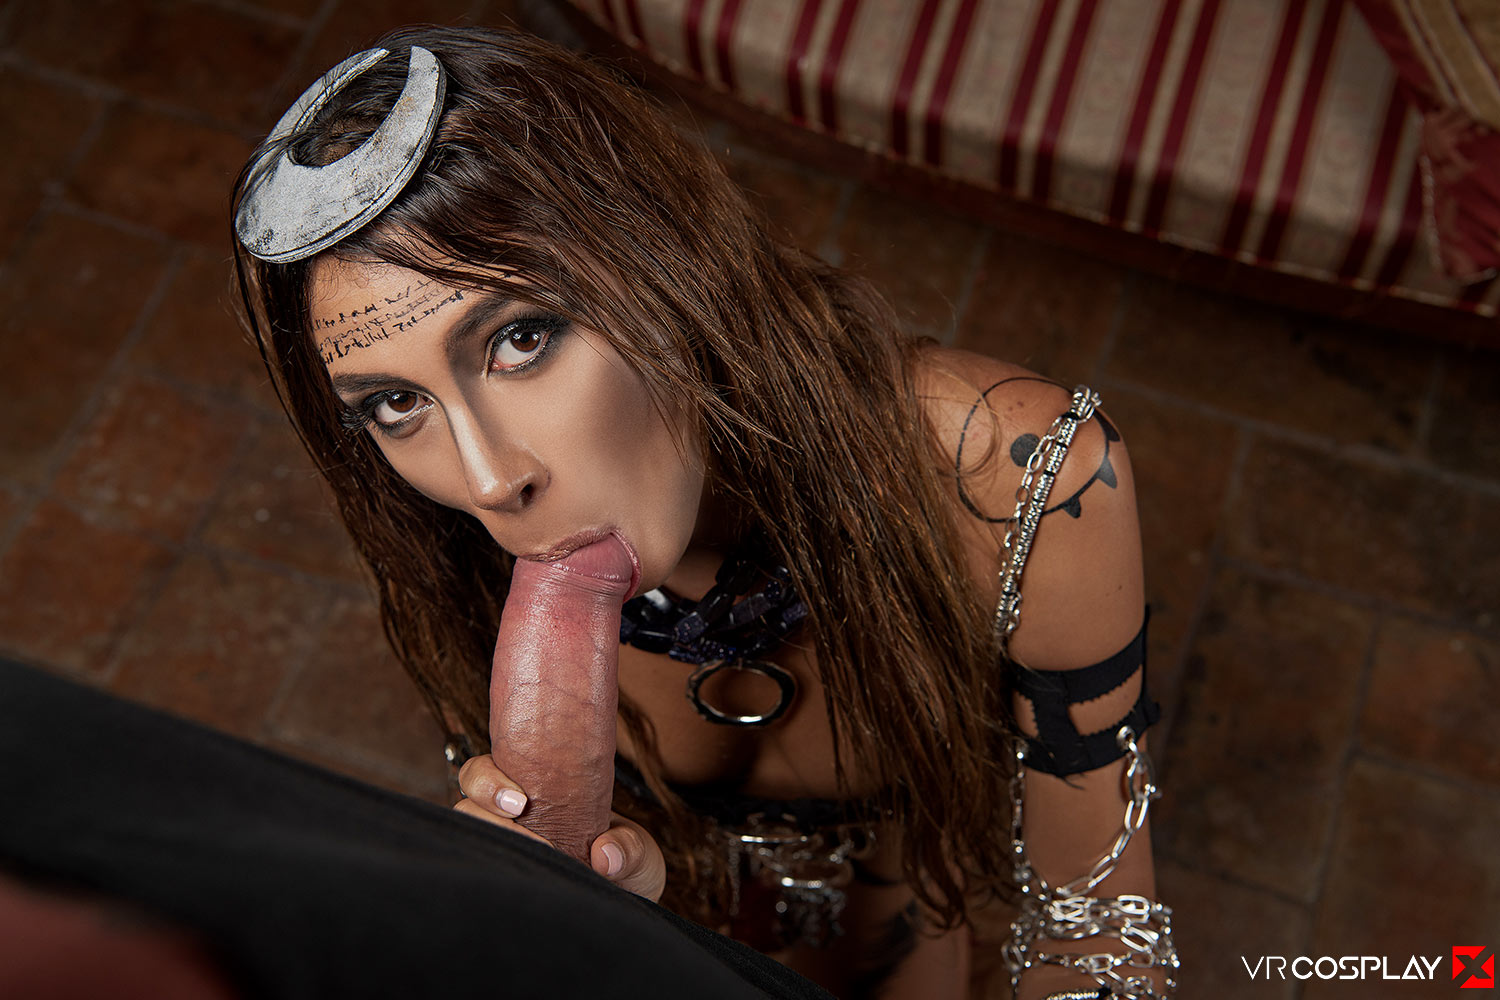 the-enchantress-a-xxx-parody-324211_1